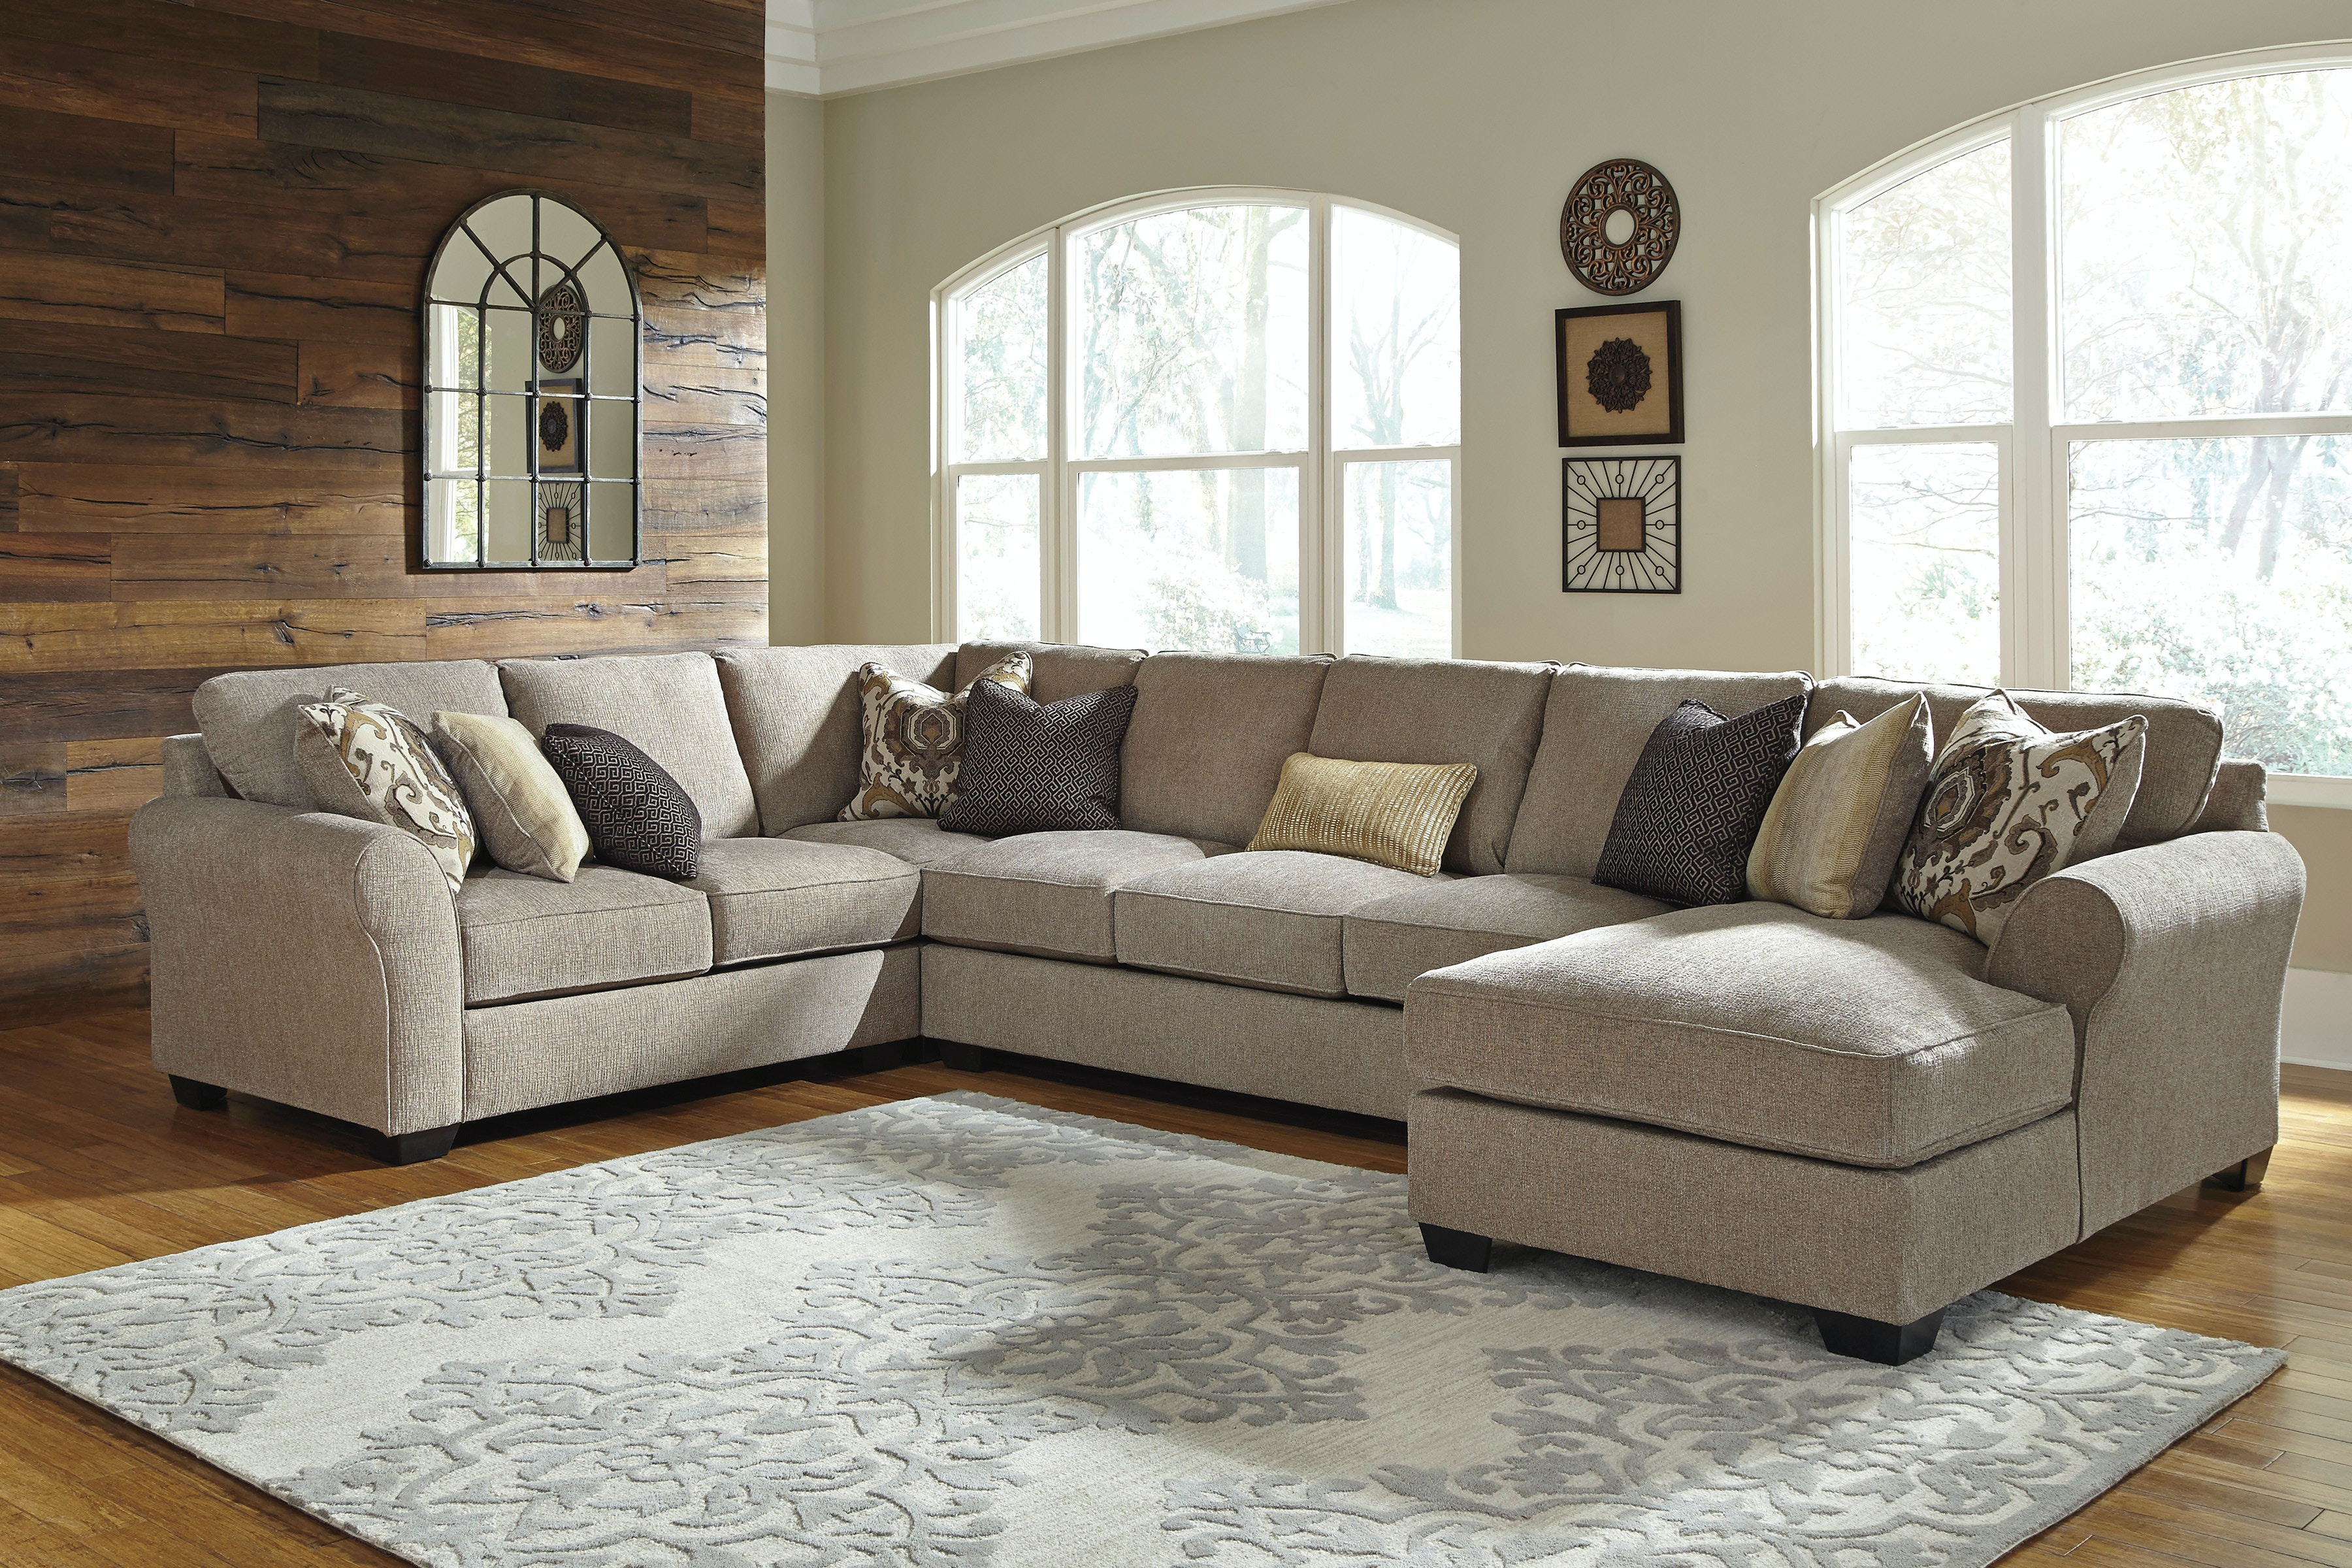 Wonderful Signature Design By Ashley Living Room Pantomine Right Chaise Sectional  582056   Furniture Fair   Cincinnati U0026 Dayton OH And Northern KY